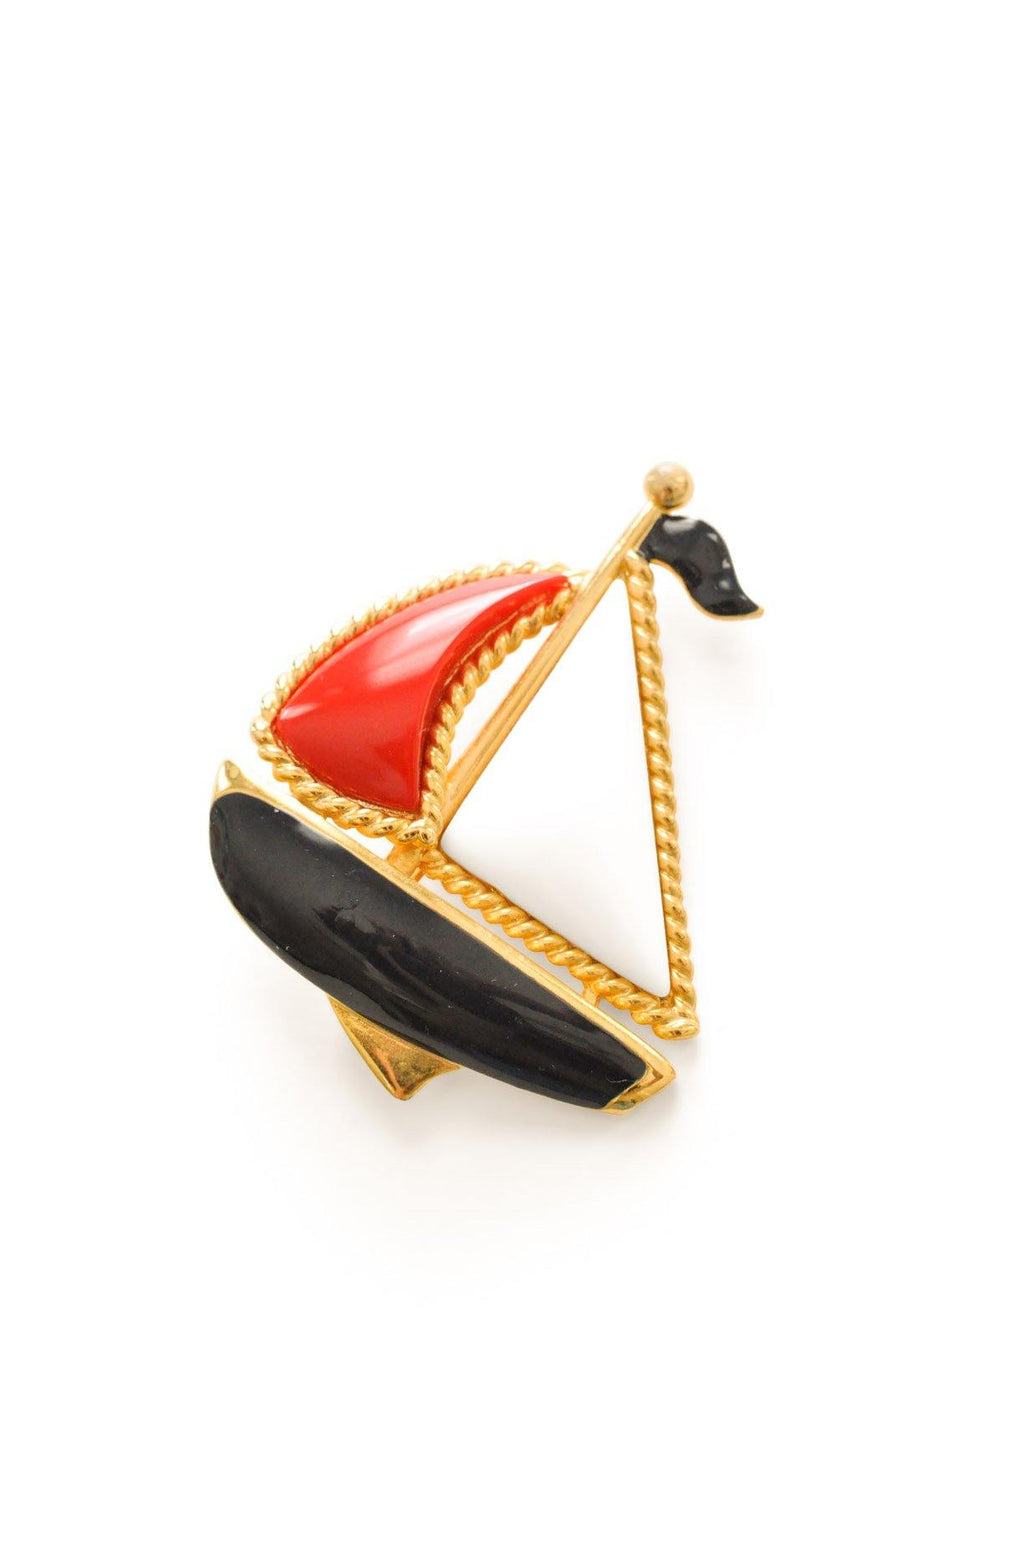 Statement Sailboat Brooch